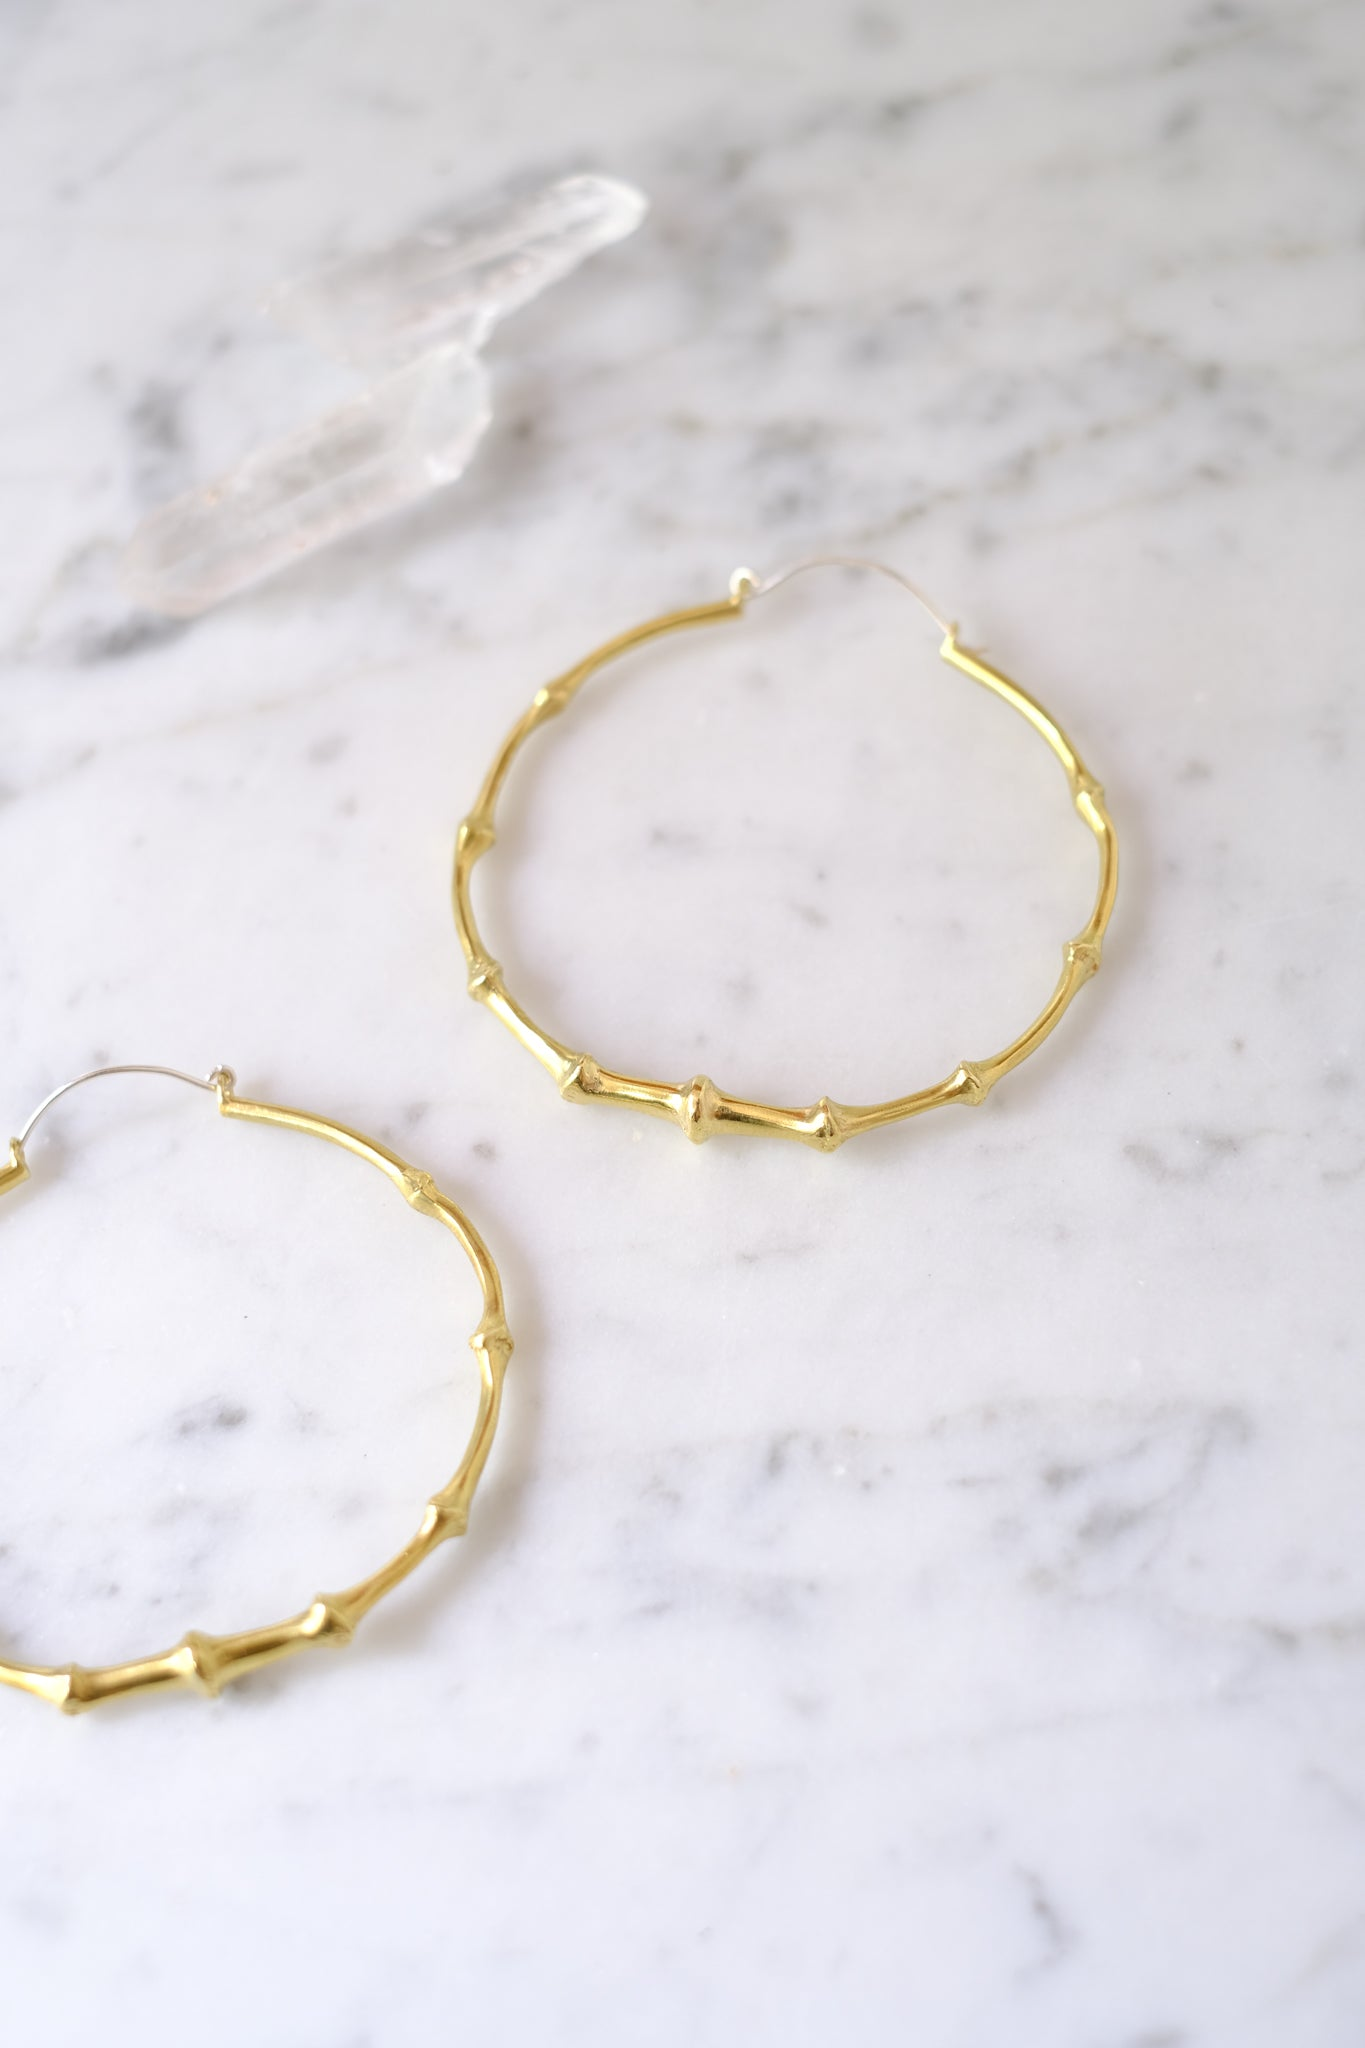 K/ller :: Earrings, Bat Tail Hoops, Brass